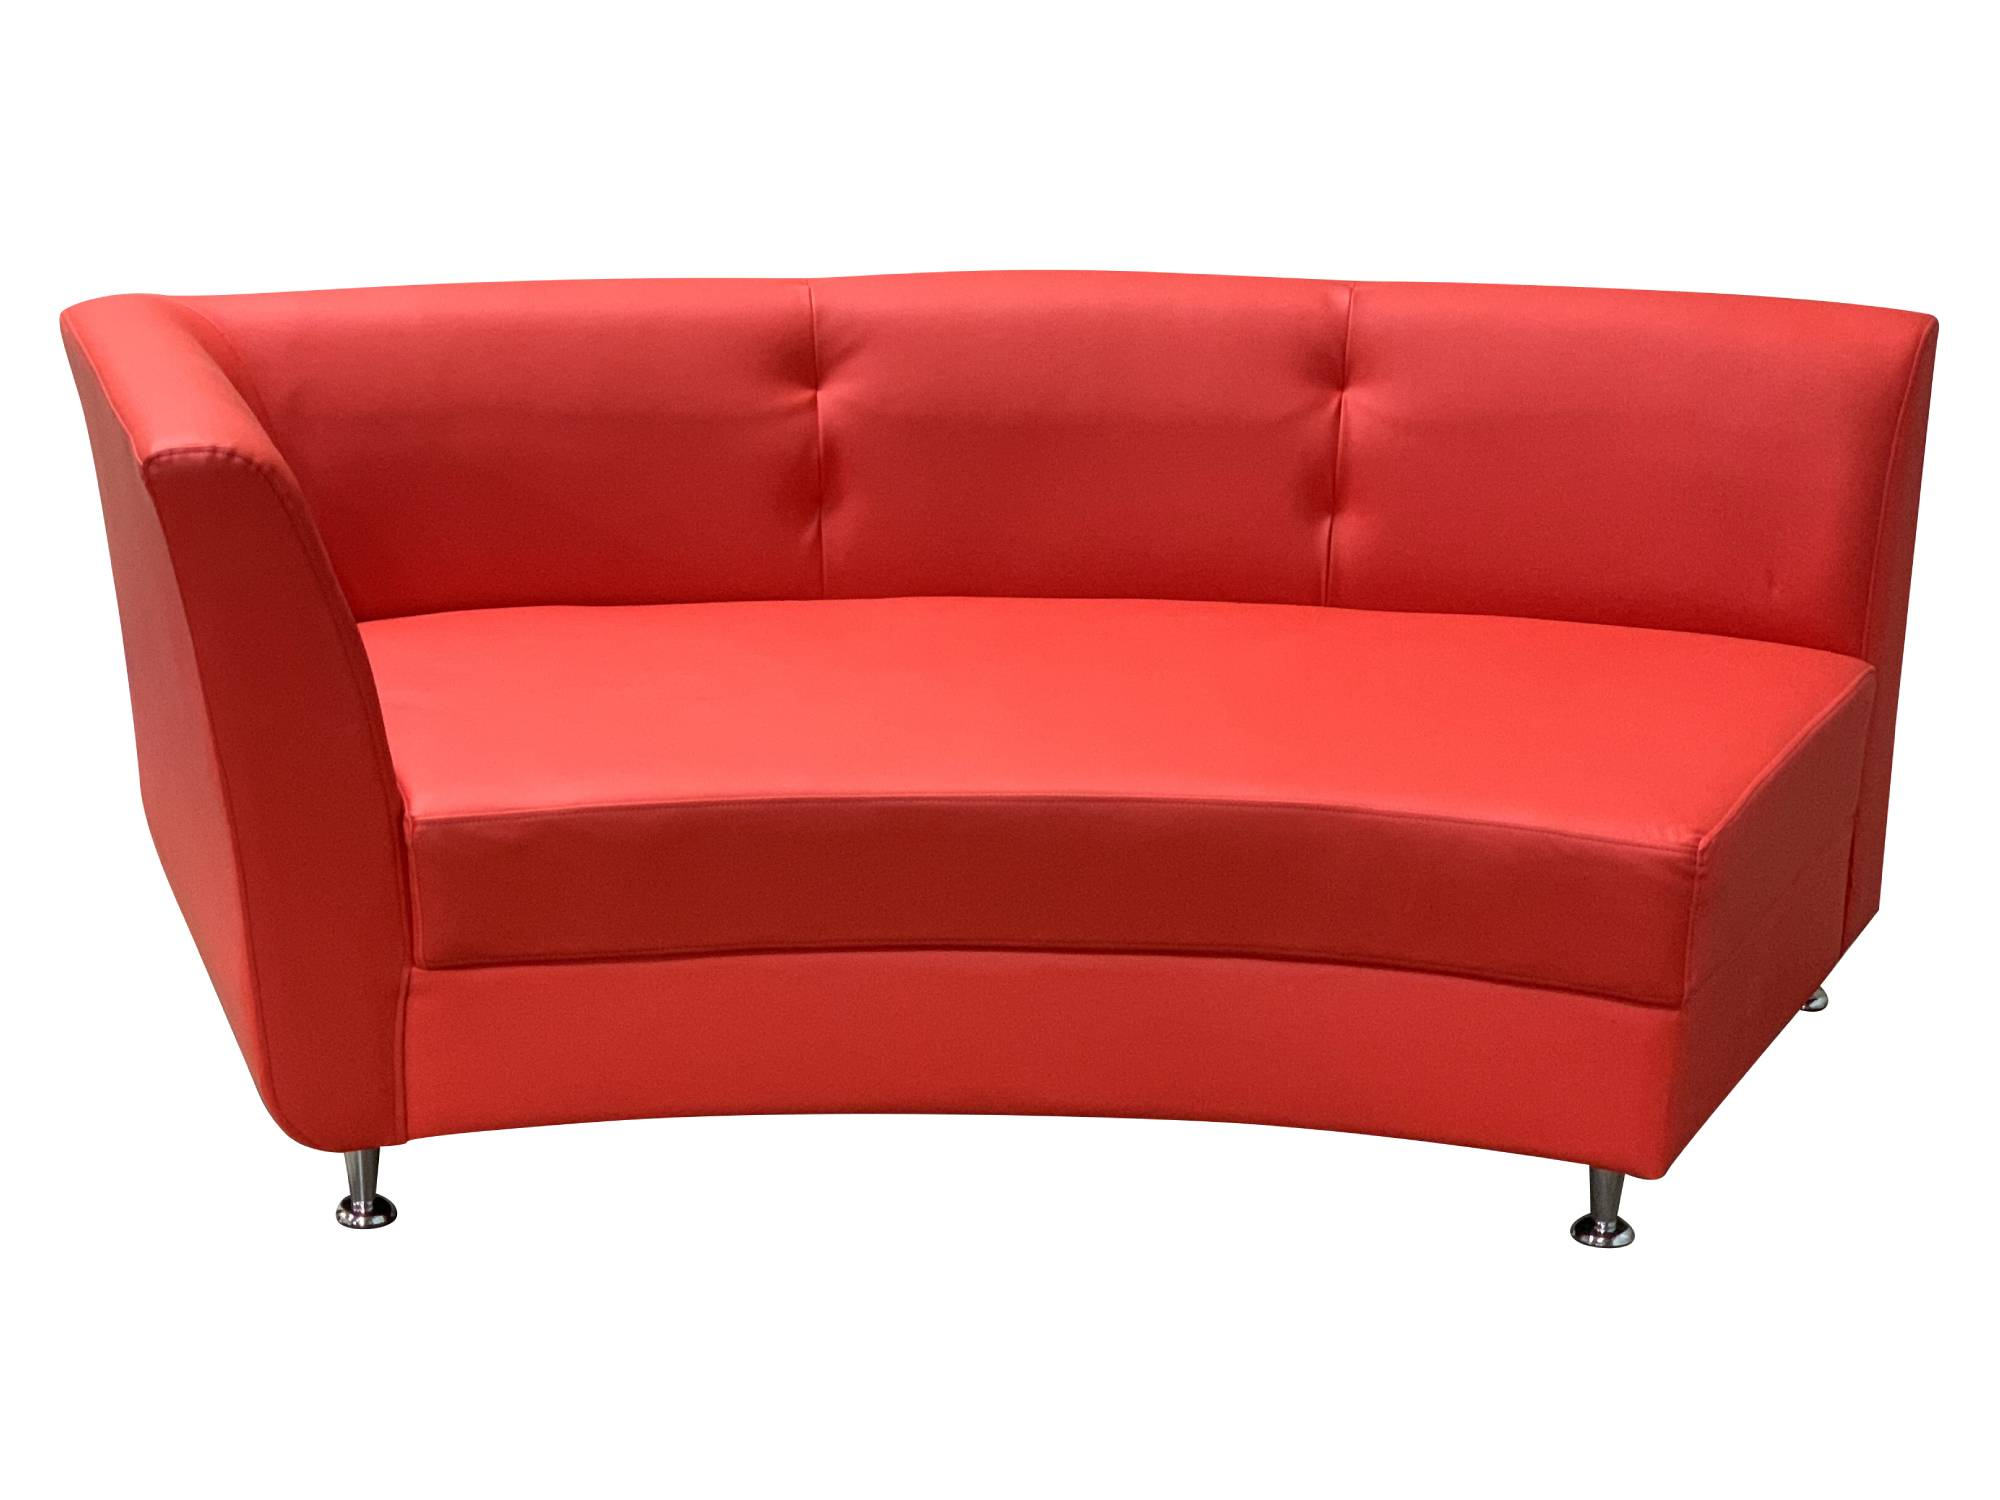 LUXURY RIGHT ARM SOFA SECTION - RED